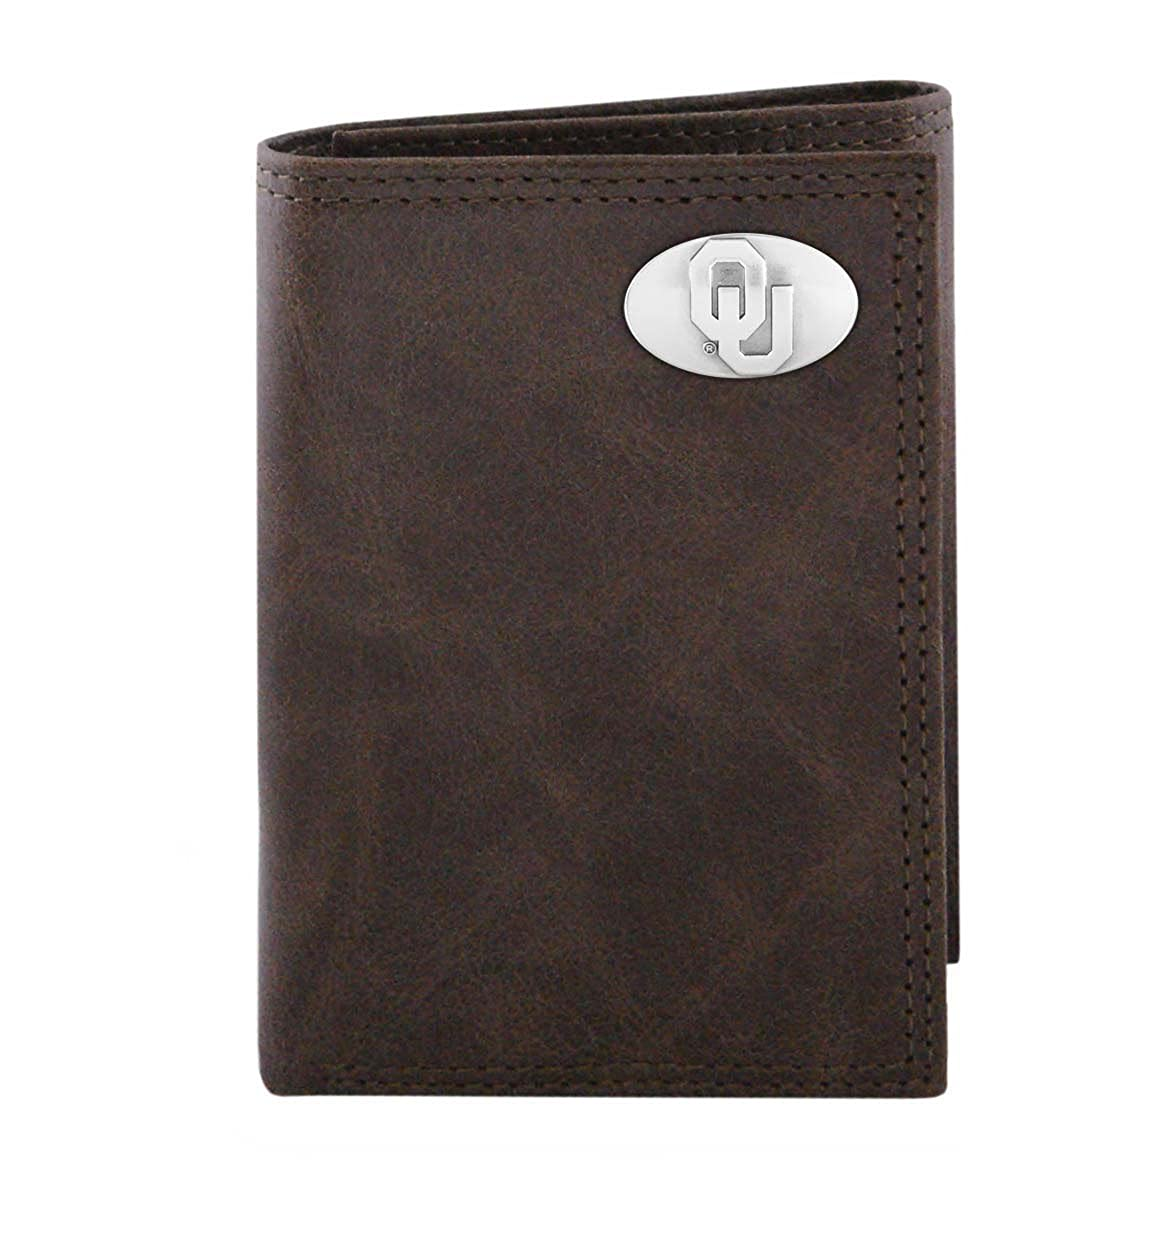 One Size NCAA Oklahoma Sooners Brown Wrinkle Leather Trifold Concho Wallet